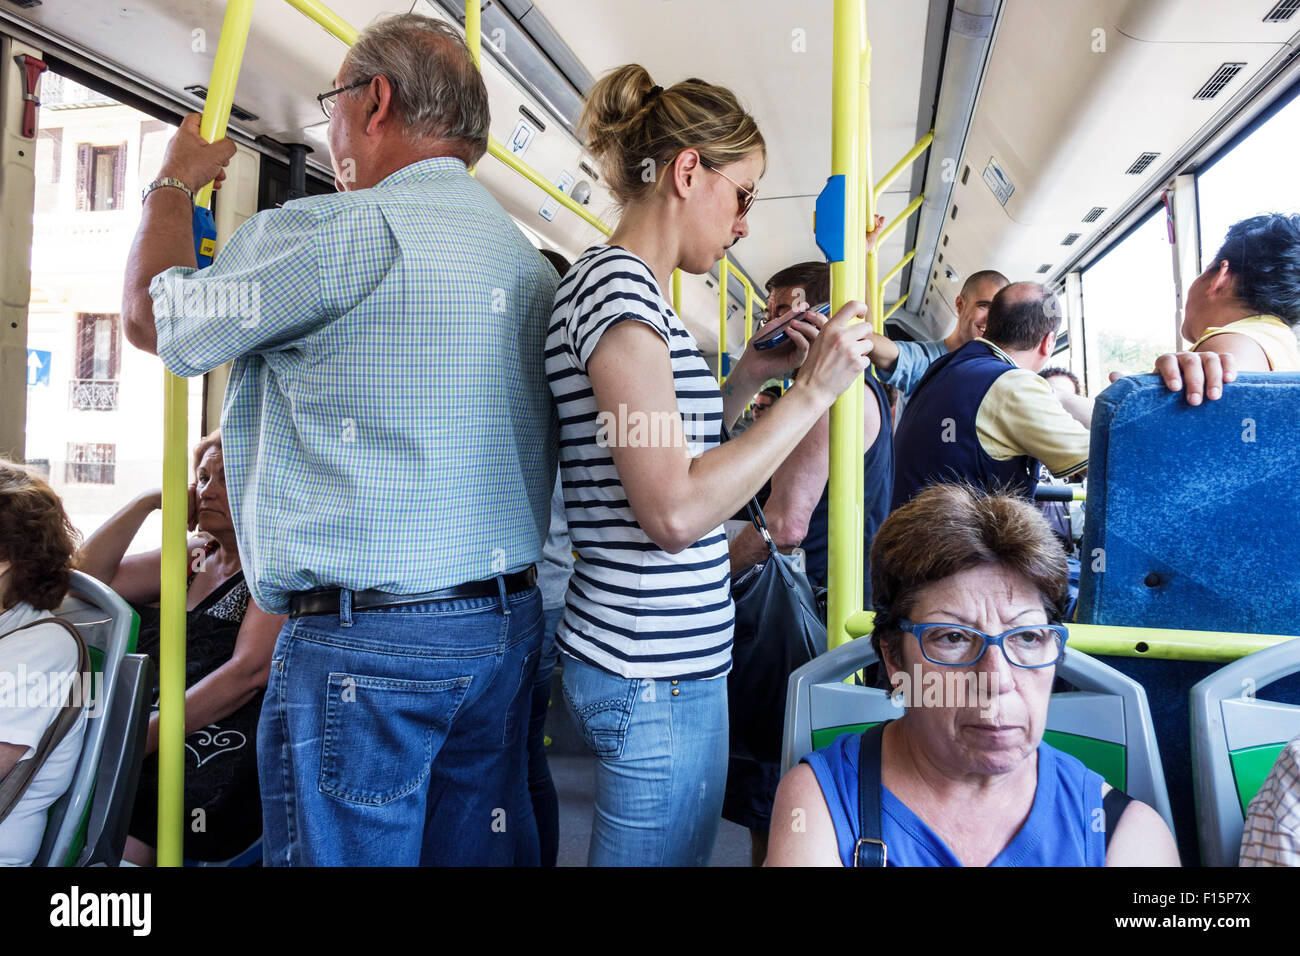 Madrid Spain Europe Spanish Metro EMT bus public transportation riders passengers standing Hispanic man woman - Stock Image